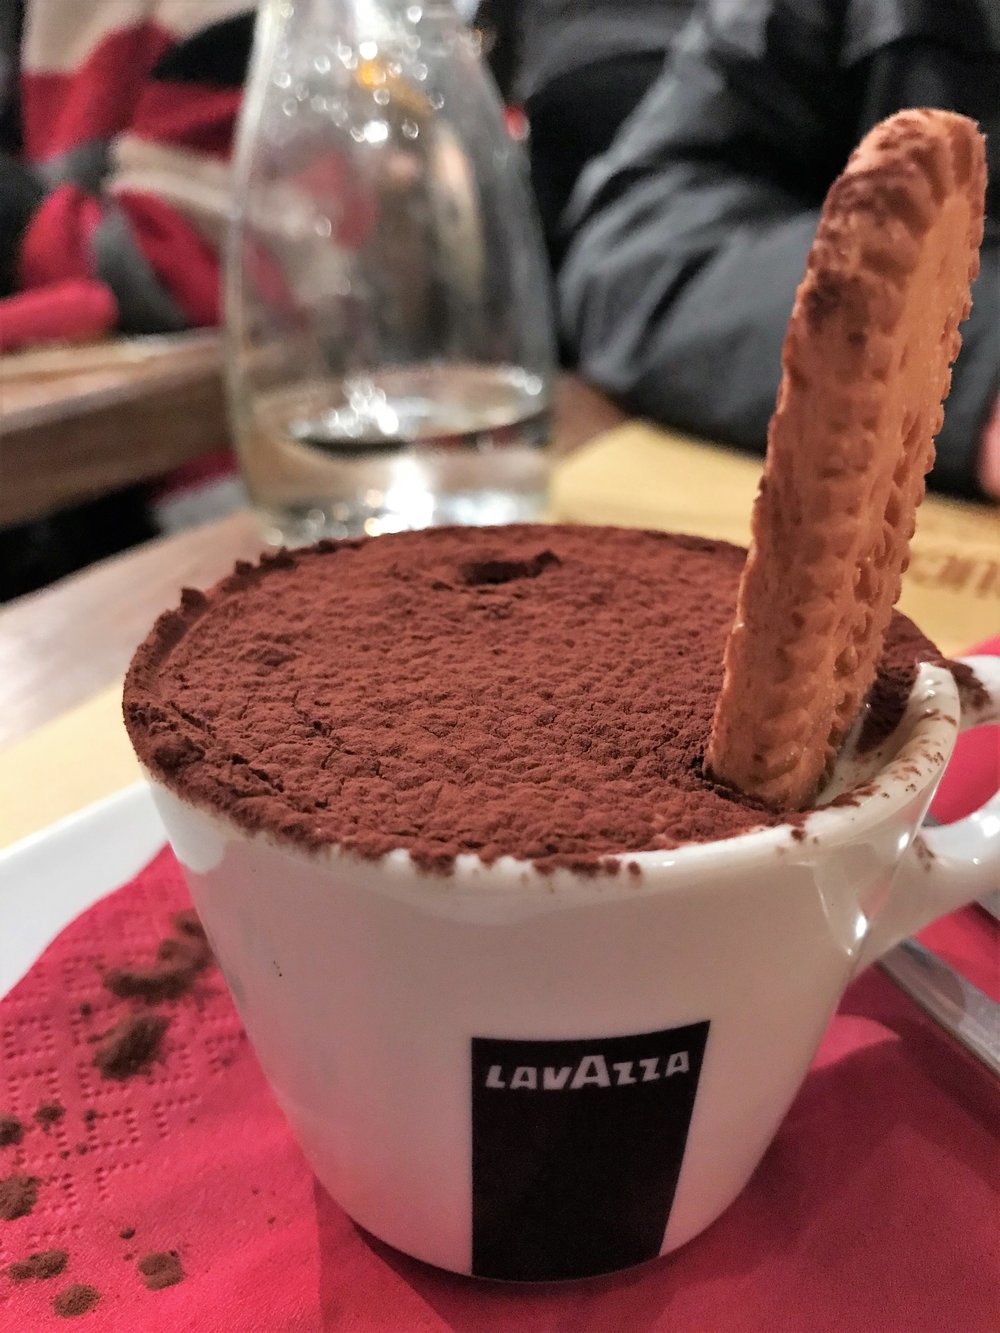 Tiramisu at Cantina e Cucina in Rome